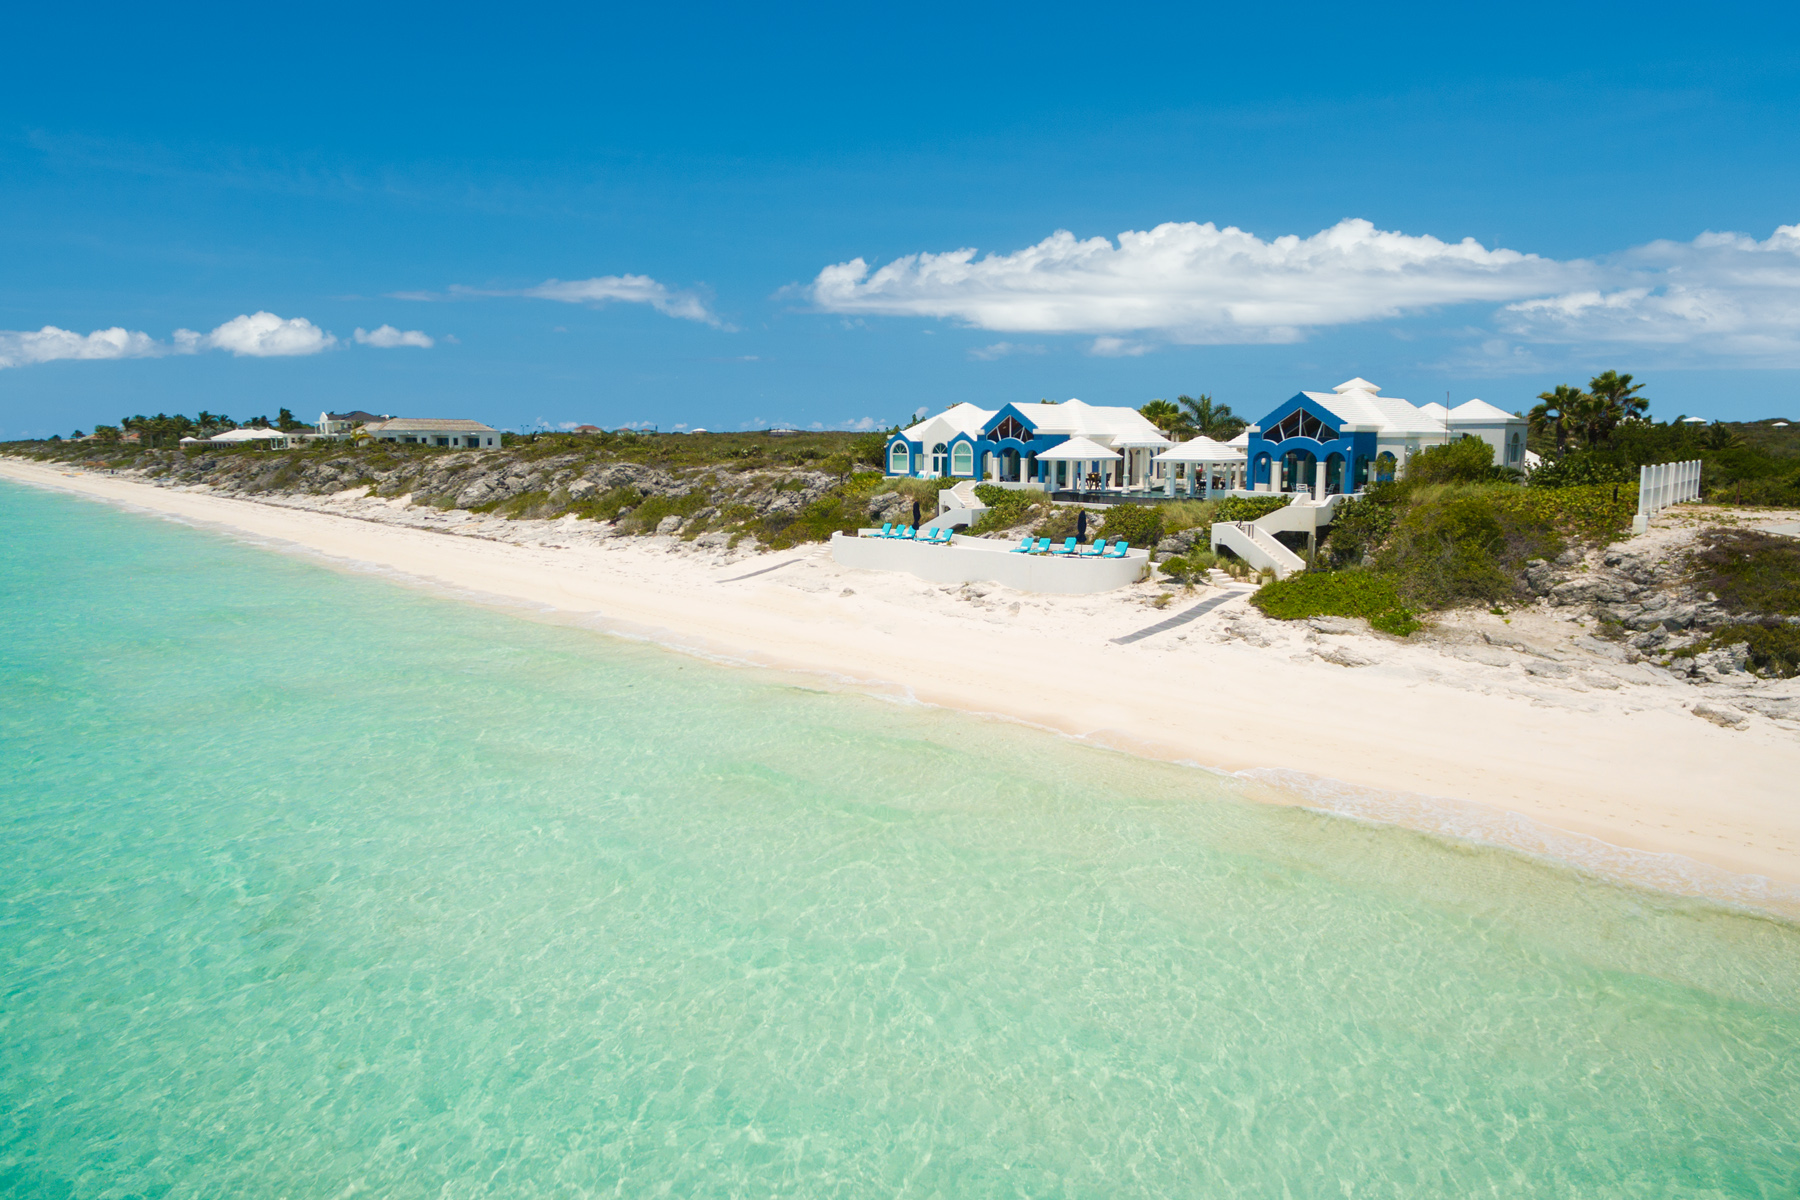 Single Family Home for Sale at Mandalay Beachfront Long Bay, Providenciales, TCI Turks And Caicos Islands